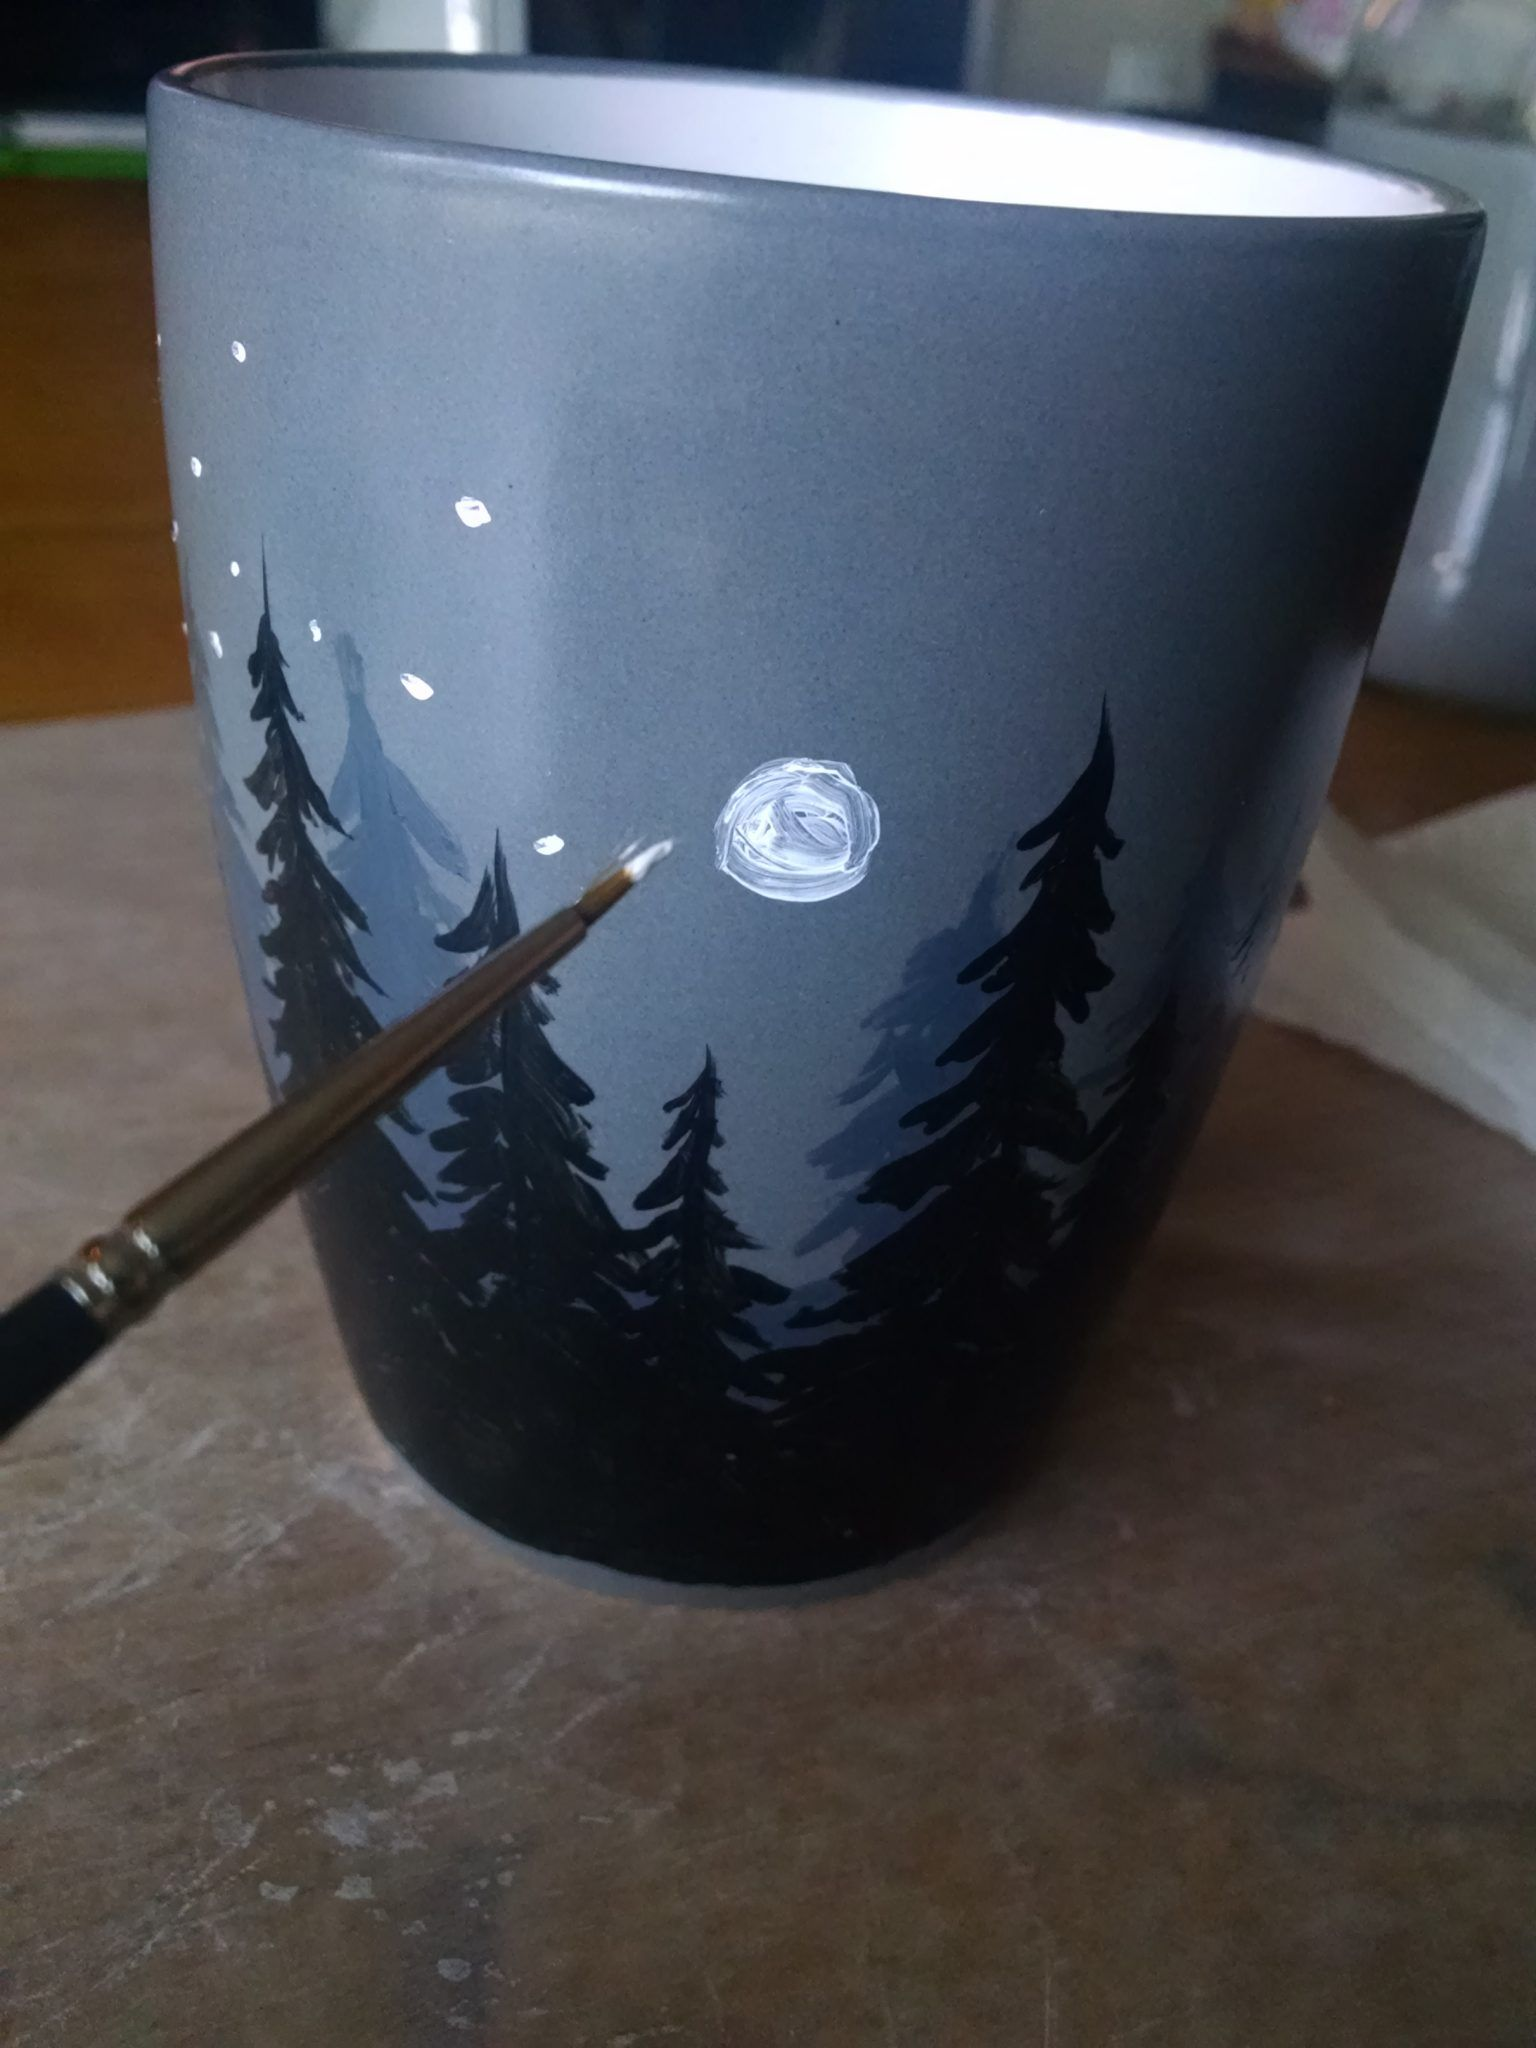 DIY Ceramic Mug Painting Tutorial - Dark Forest #ceramicpainting